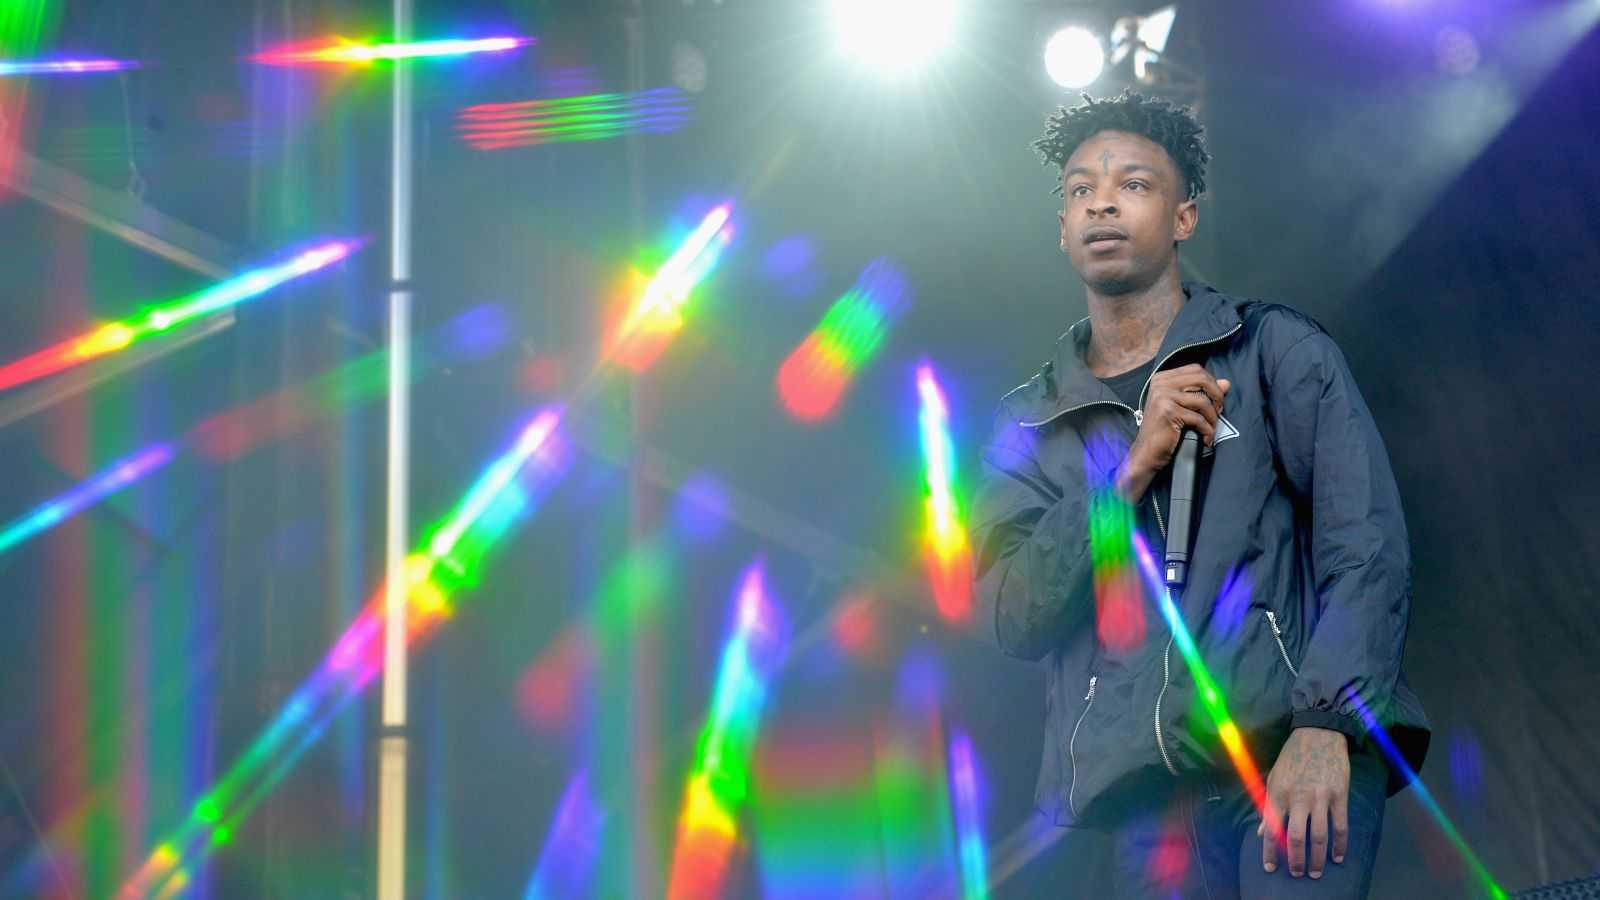 'He Won His Freedom': 21 Savage Released from ICE Custody on Bond